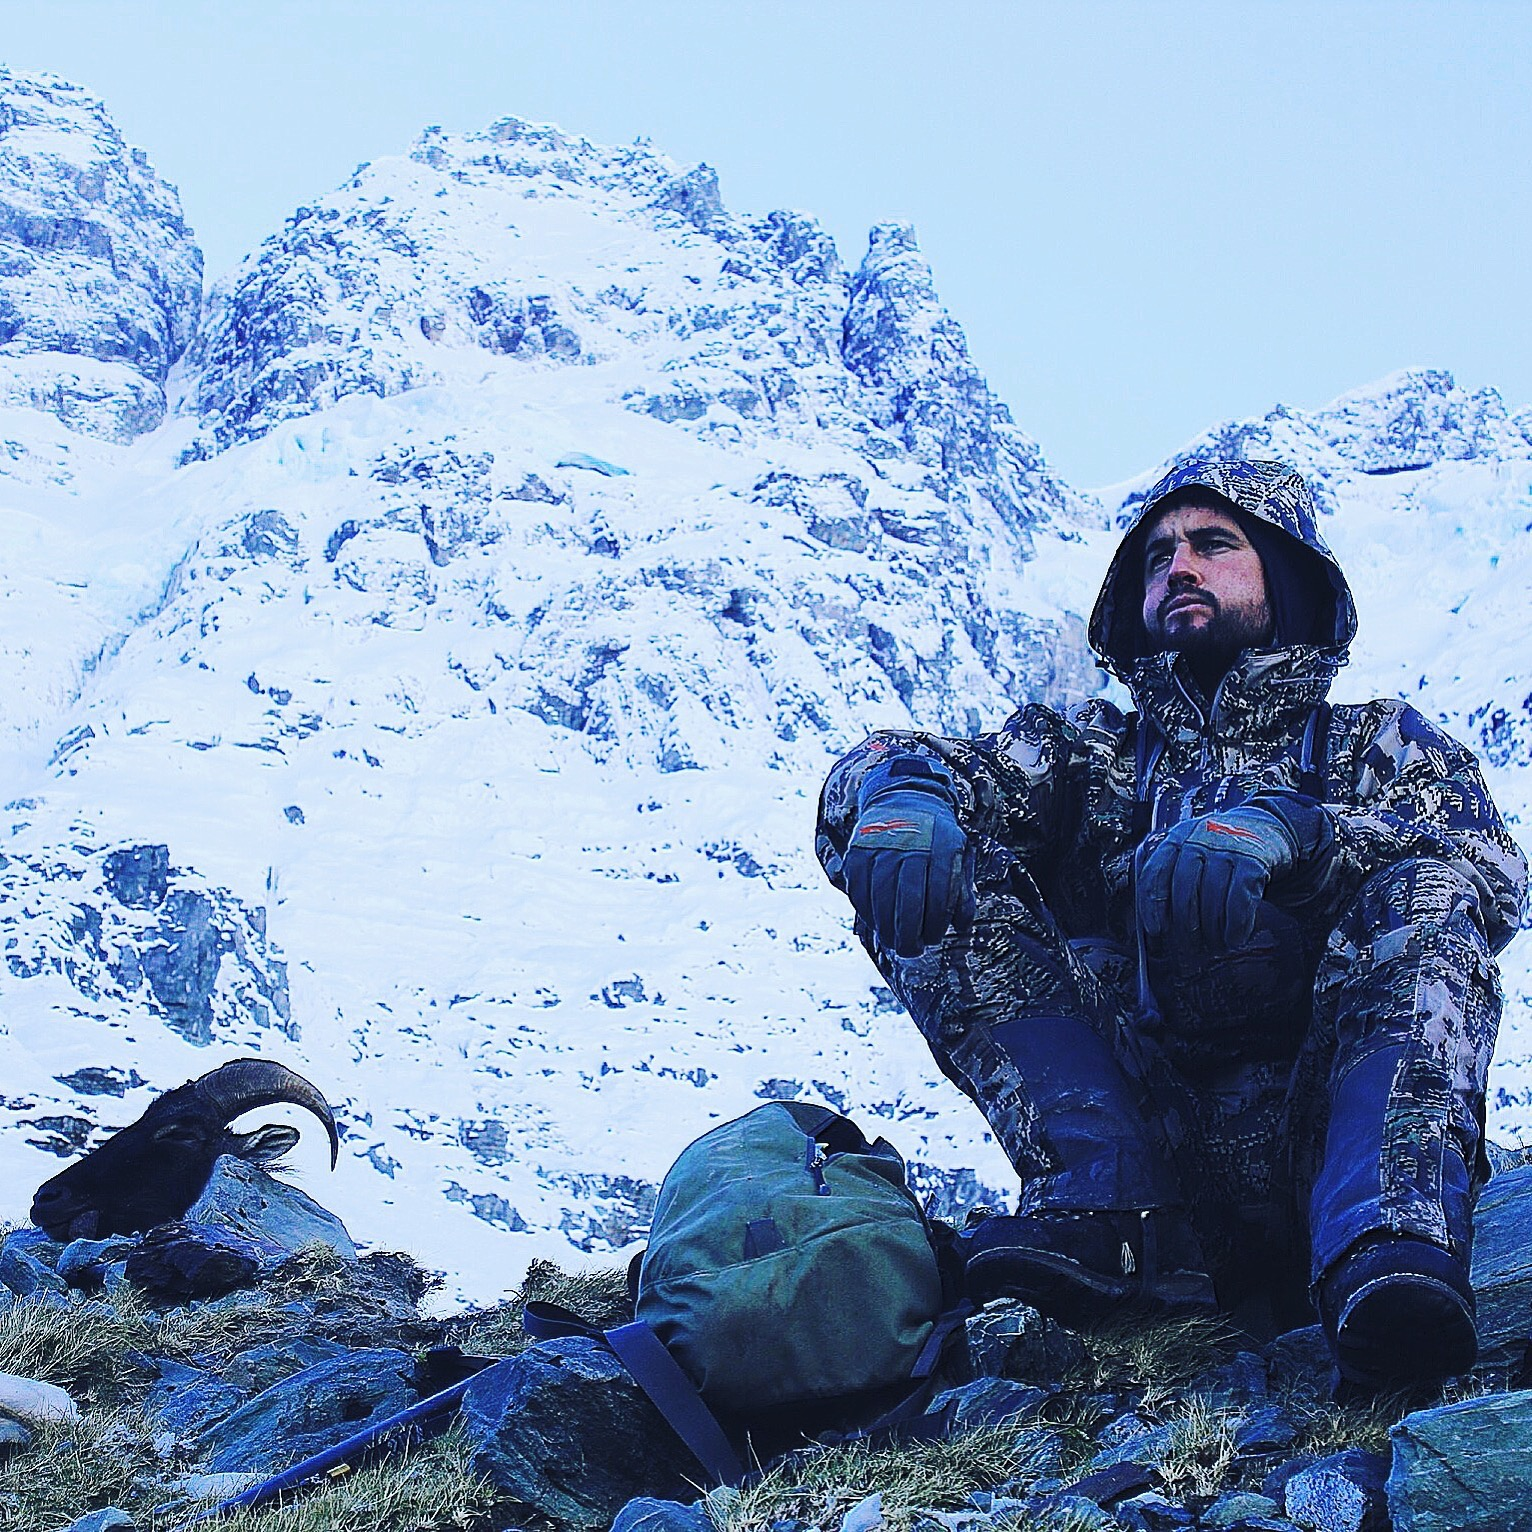 Dan Feary chewing over the days events. Image @ Hugh Bagley (Sitka optifade)